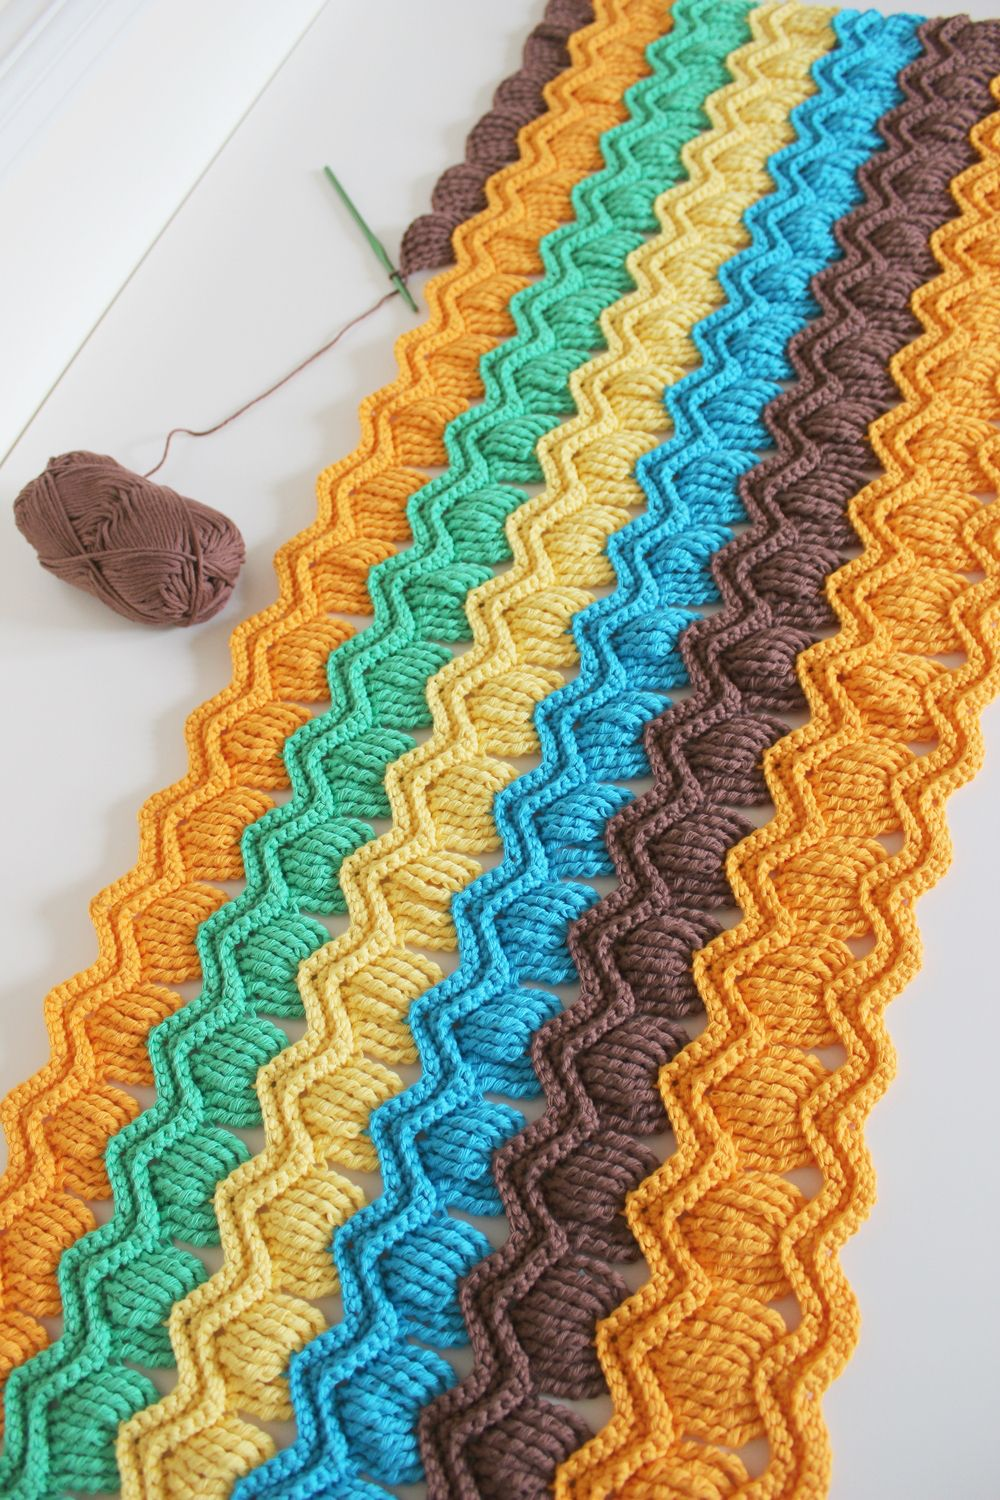 Free Crochet Pattern for a Ripple Fan Blanket by @ChiakiCreates ...